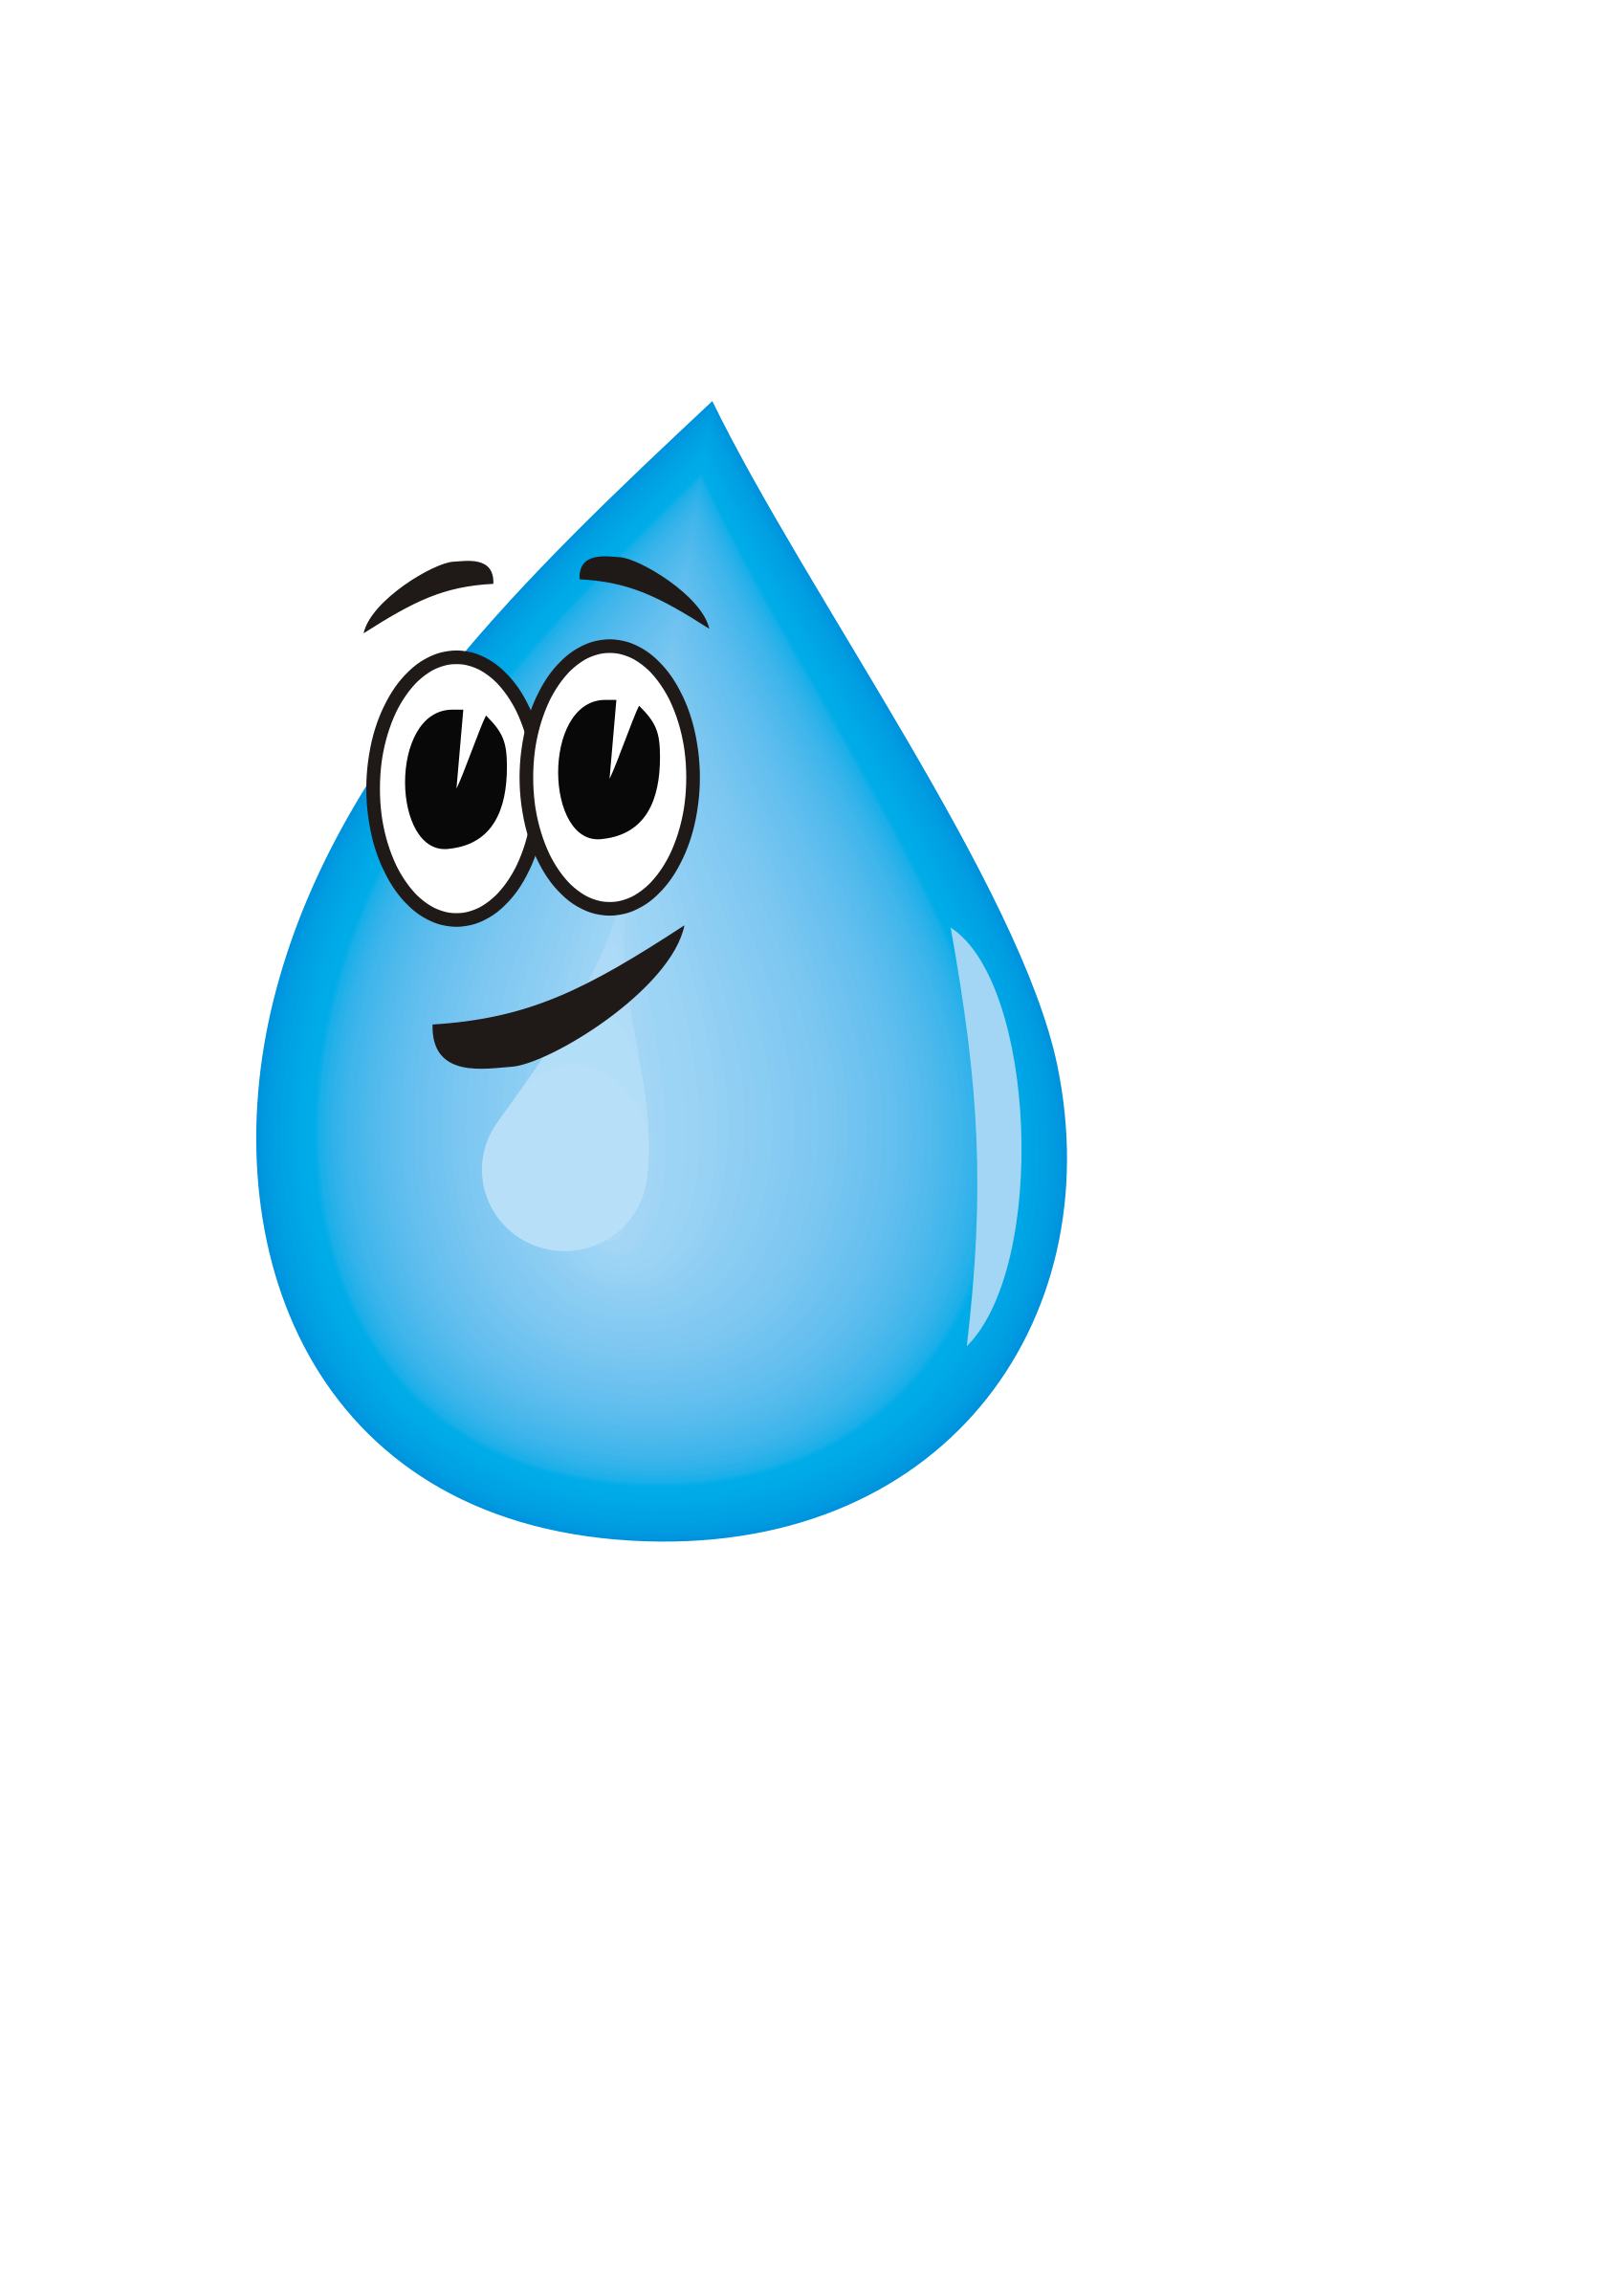 Drawn water droplets cartoon Clipart Drop Water drawings Water